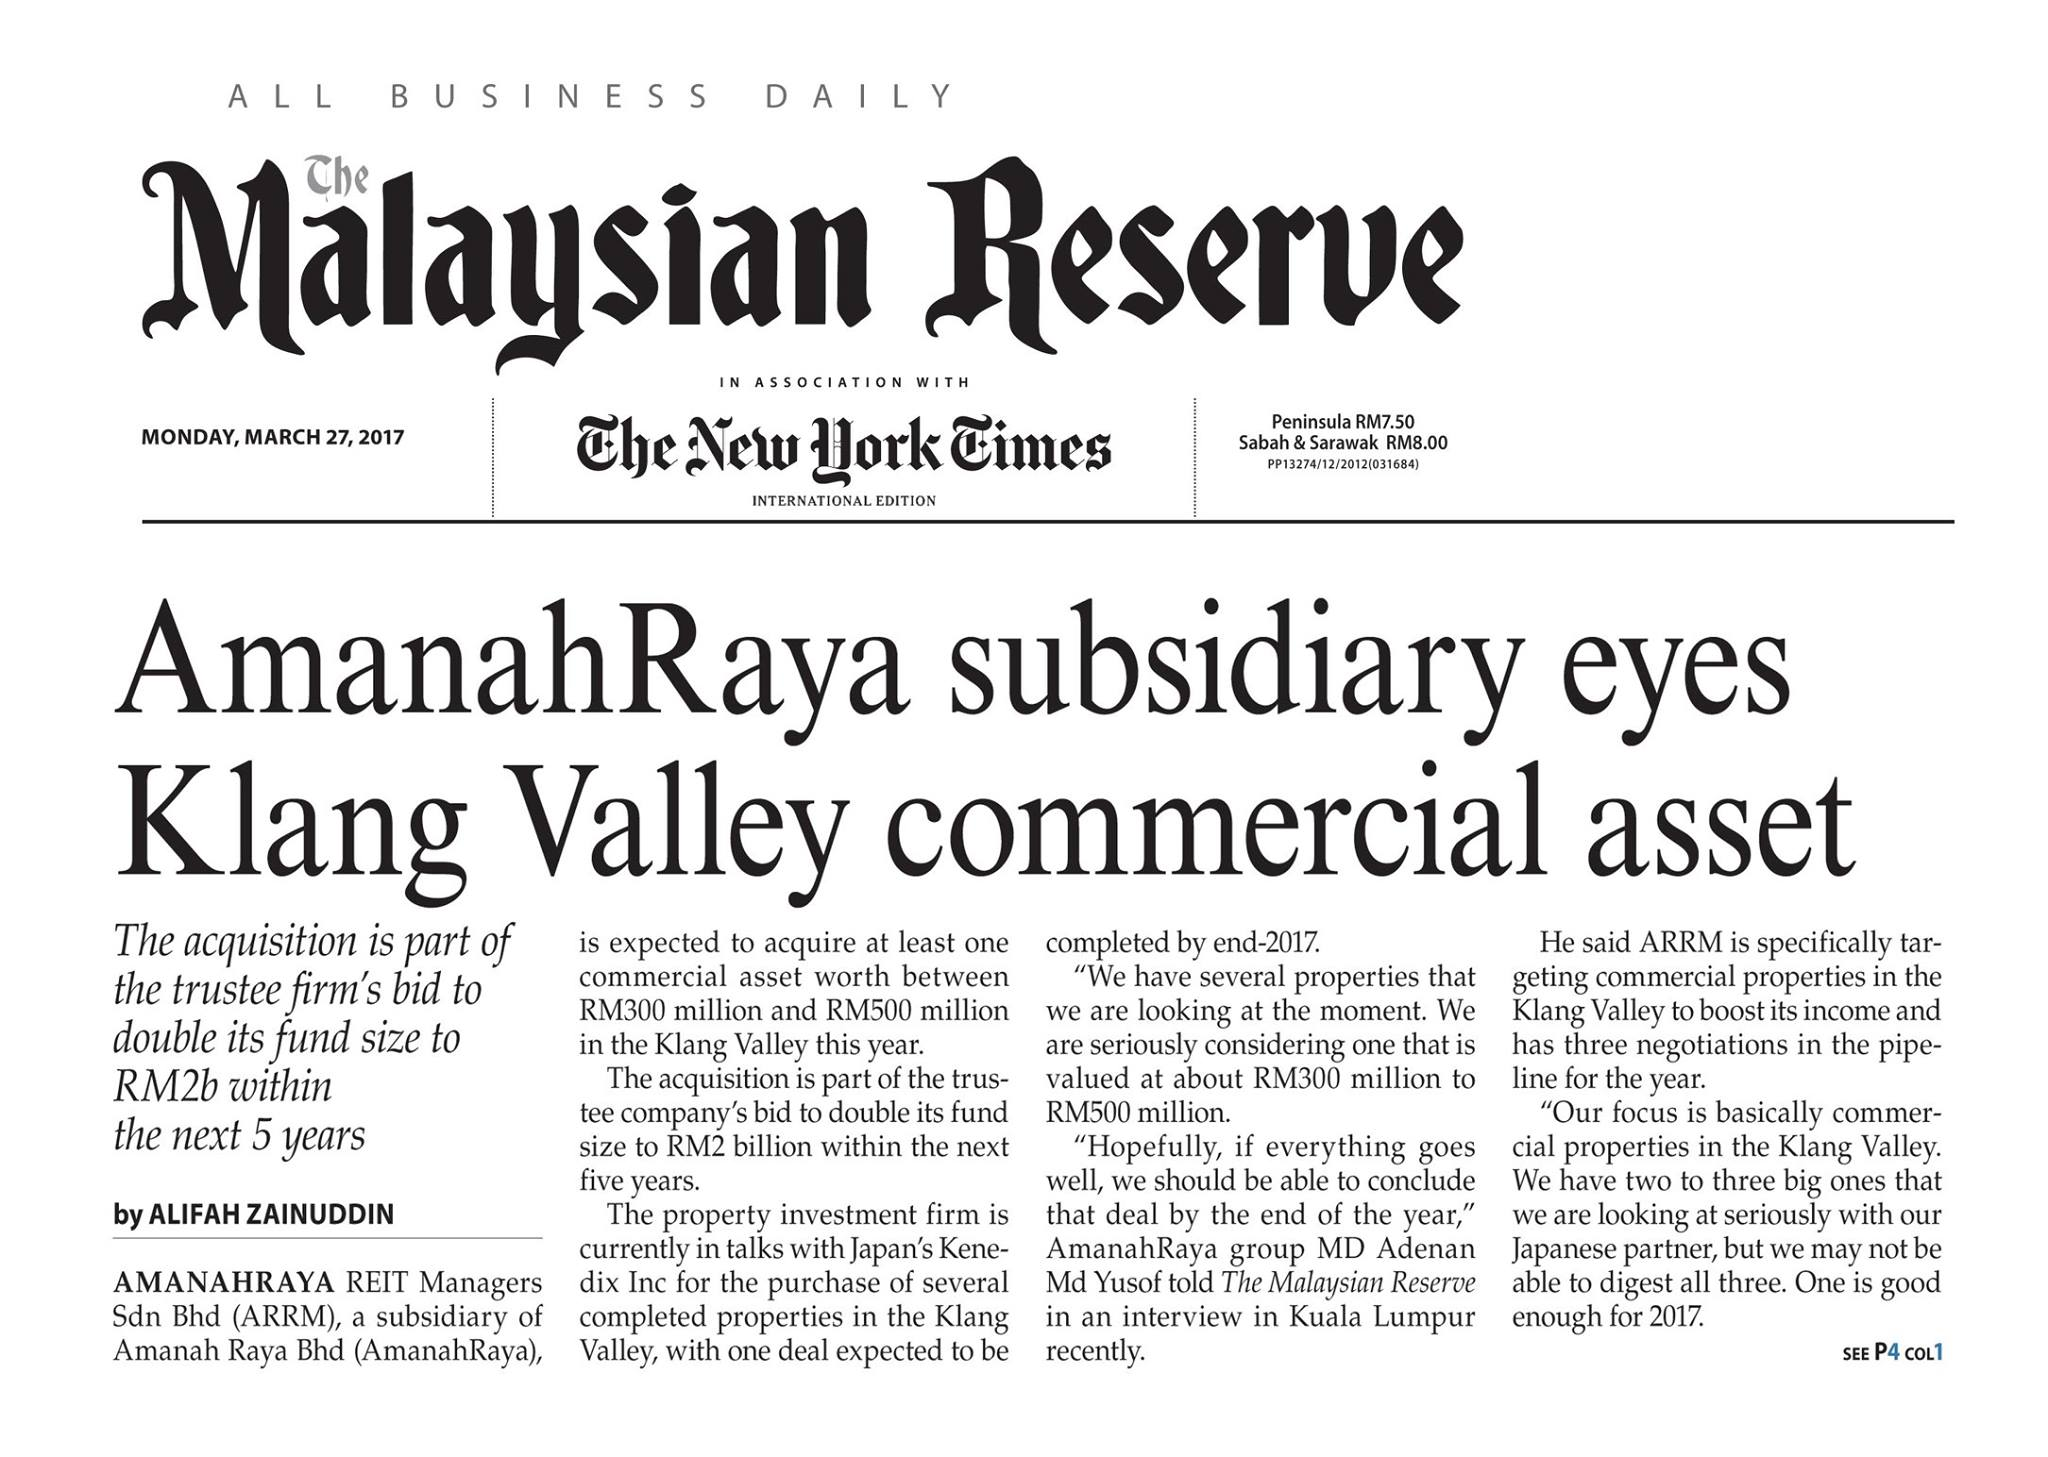 AmanahRaya REIT Managers Sdn Bhd, a subsidiary of Amanah Raya Bhd (AmanahRaya), is expected to acquire at least one commercial asset worth between RM300 million and RM500 million in the Klang Valley this year.